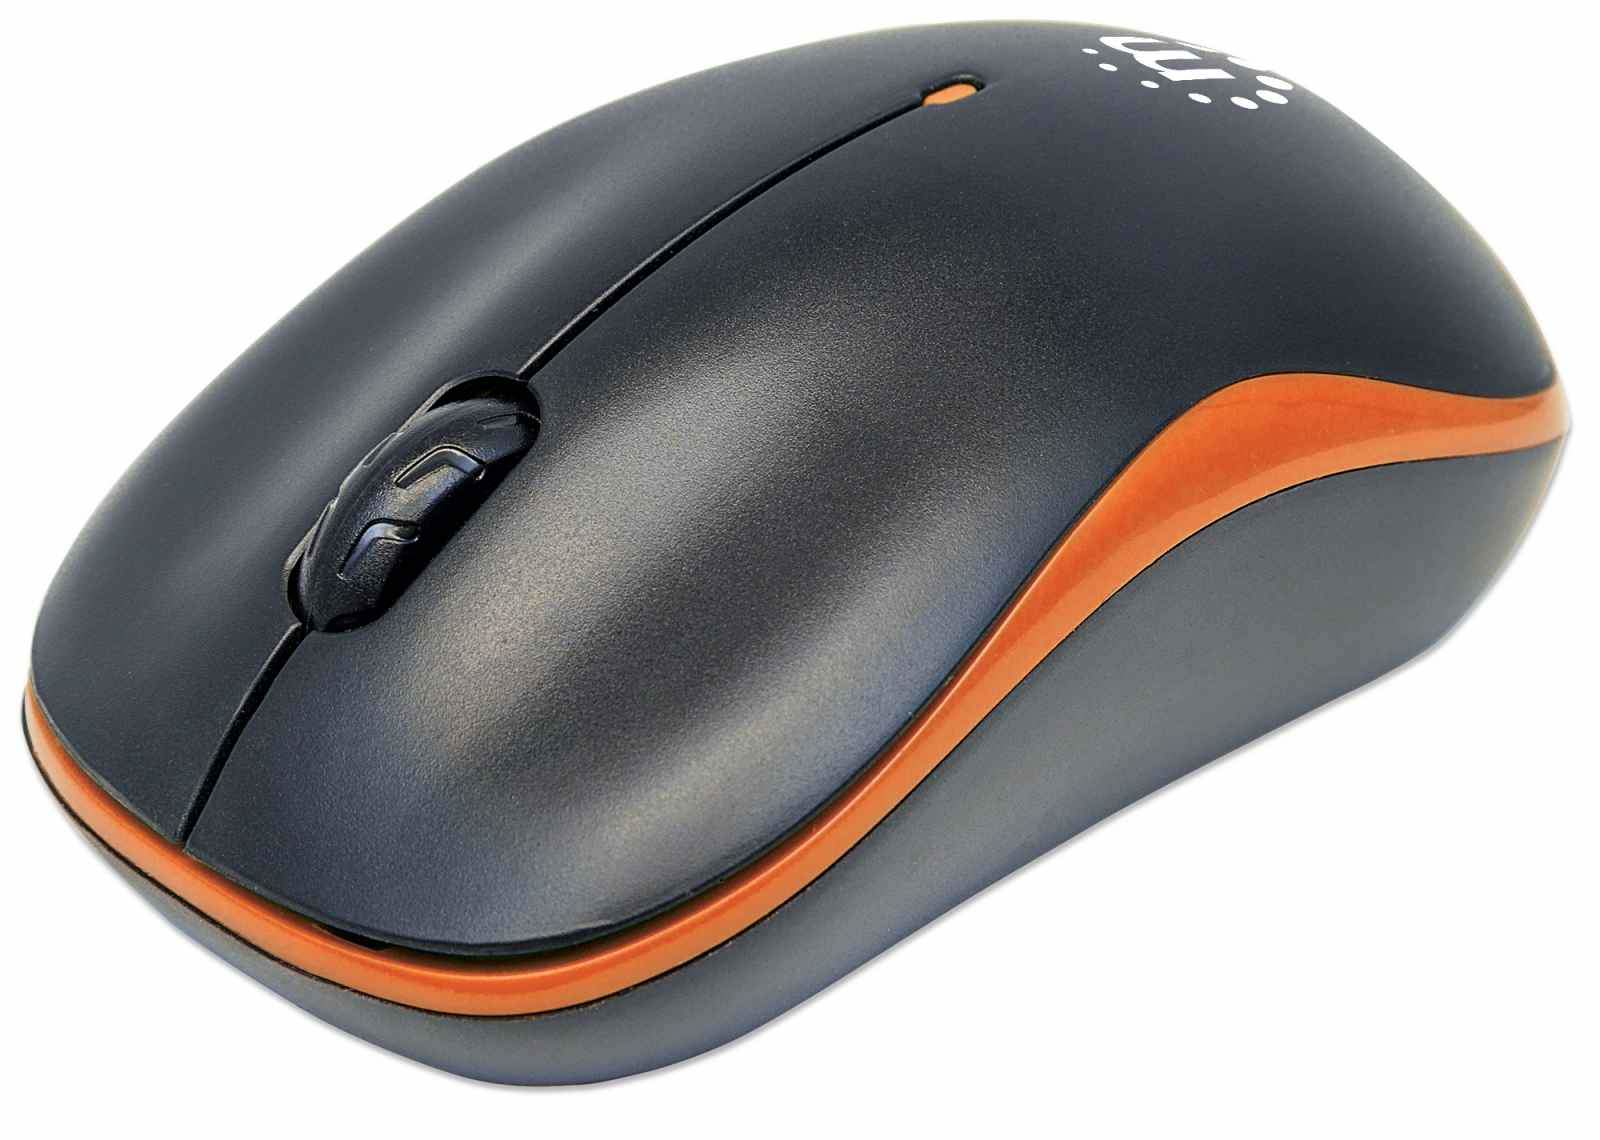 Manhattan Success Wireless Mouse (Promo), Black/Orange, 1000dpi, 2.4Ghz (up to 10m), USB, Optical, Three Button with Scroll Wheel, USB micro receiver, AA battery (included), Low friction base, Box